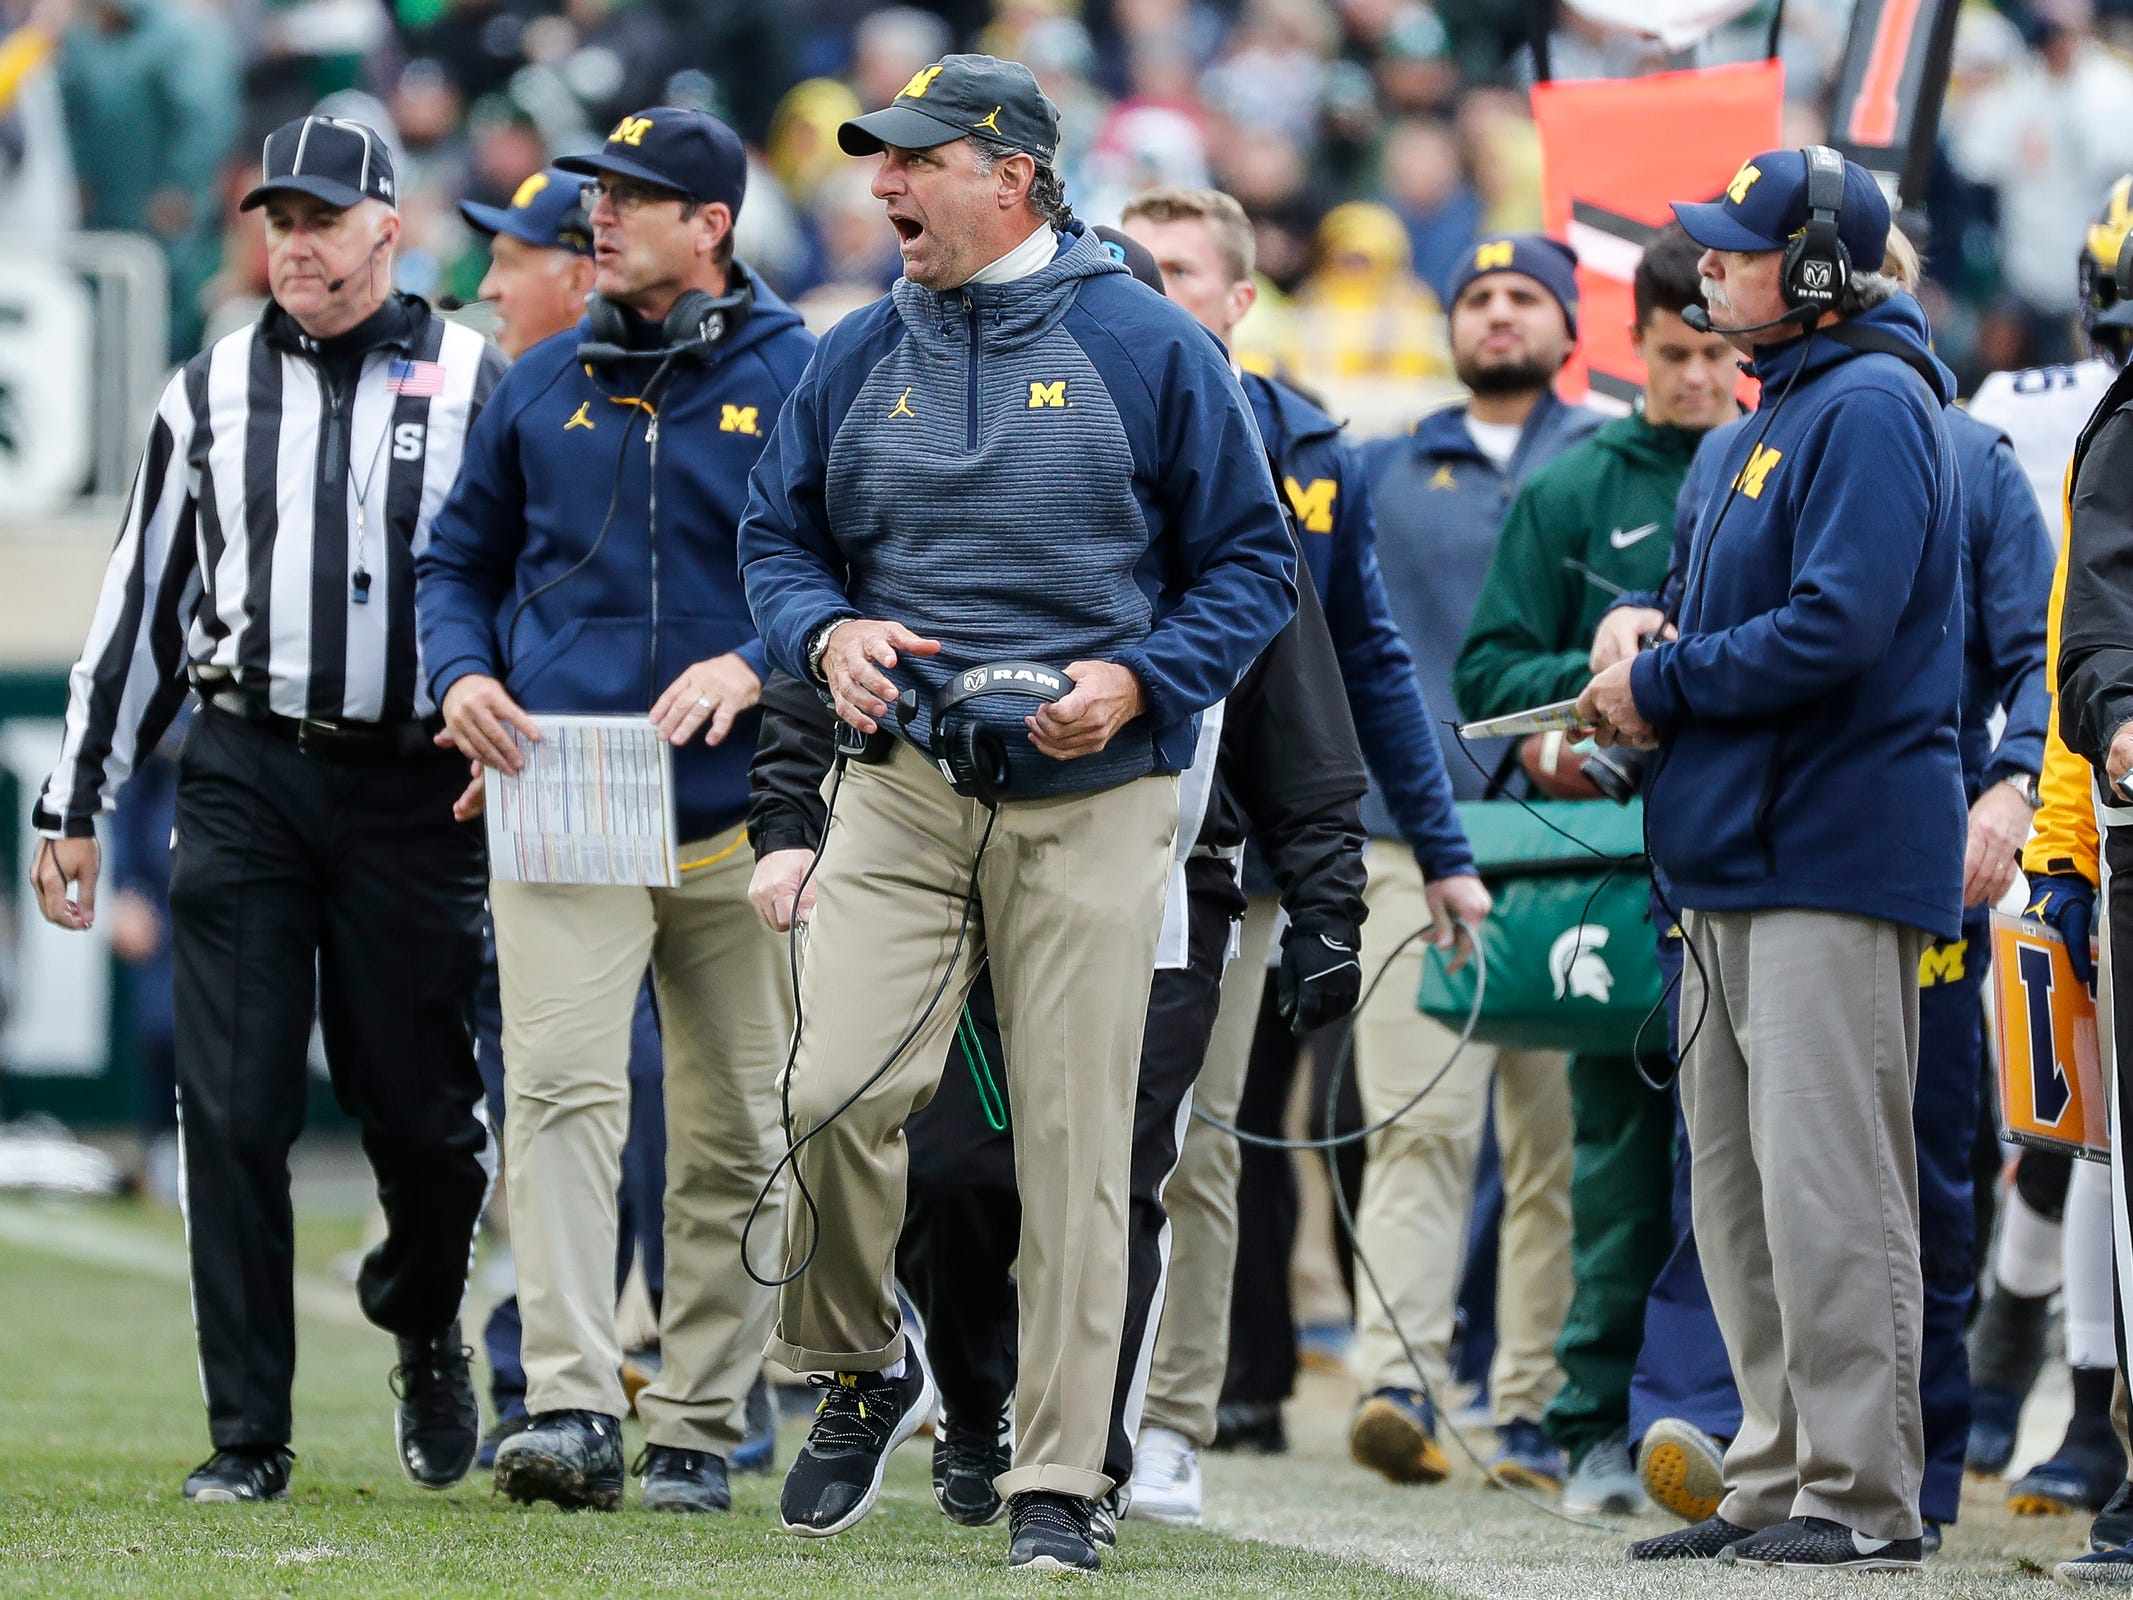 Michigan secondary/special team coach Michael Zordich, center, reacts to a play against Michigan State during the second half at Spartan Stadium in East Lansing, Saturday, Oct. 20, 2018.